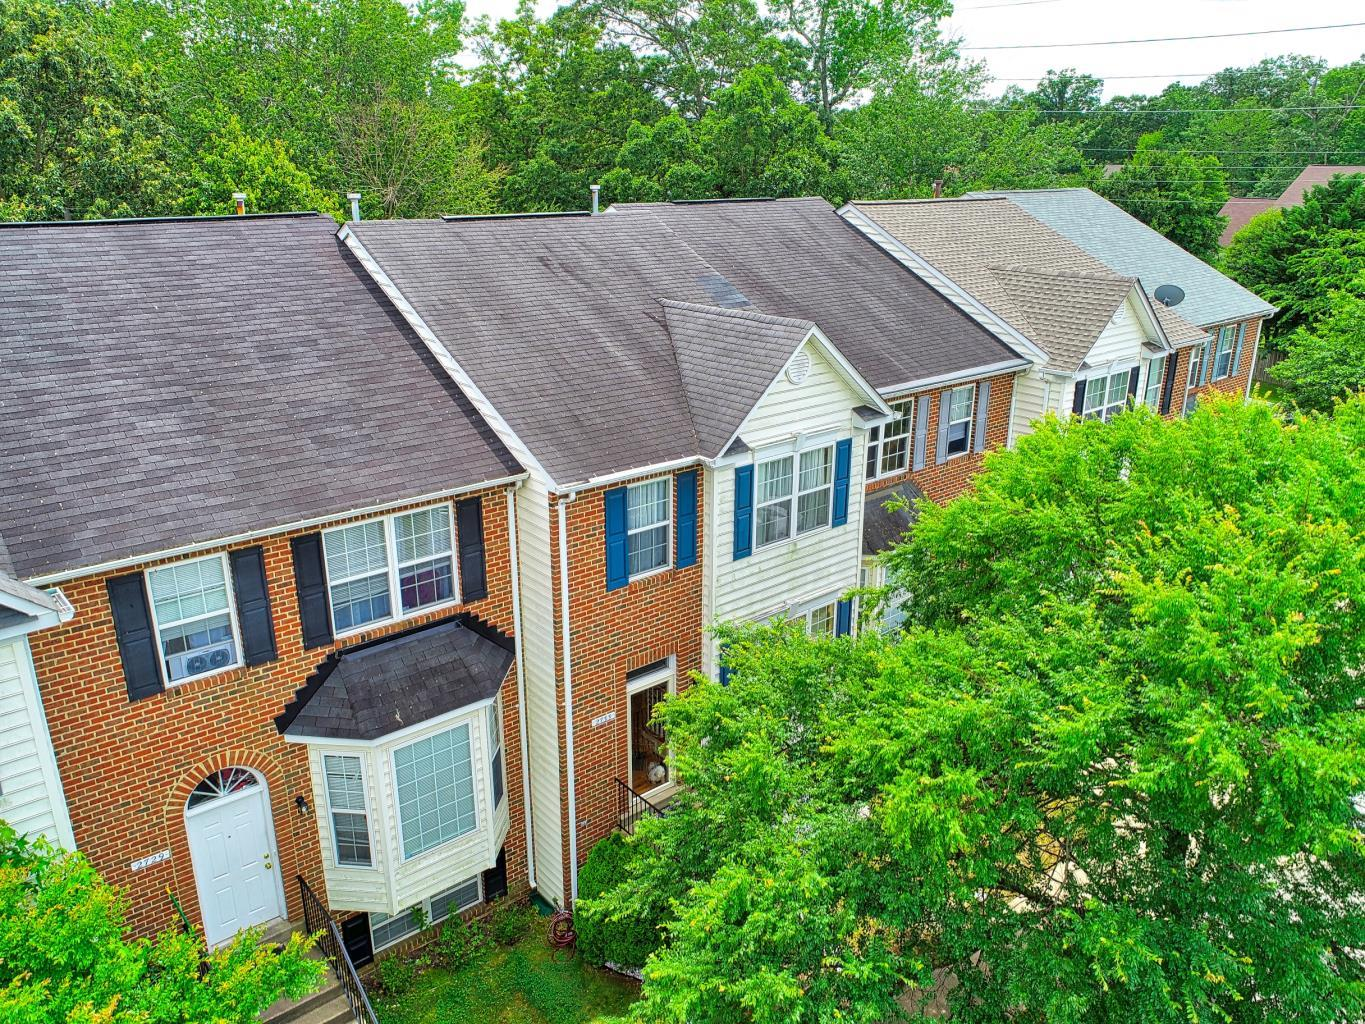 Townhouse for sale in waldorf md - 2733 Stanford Place in Waldorf MD -